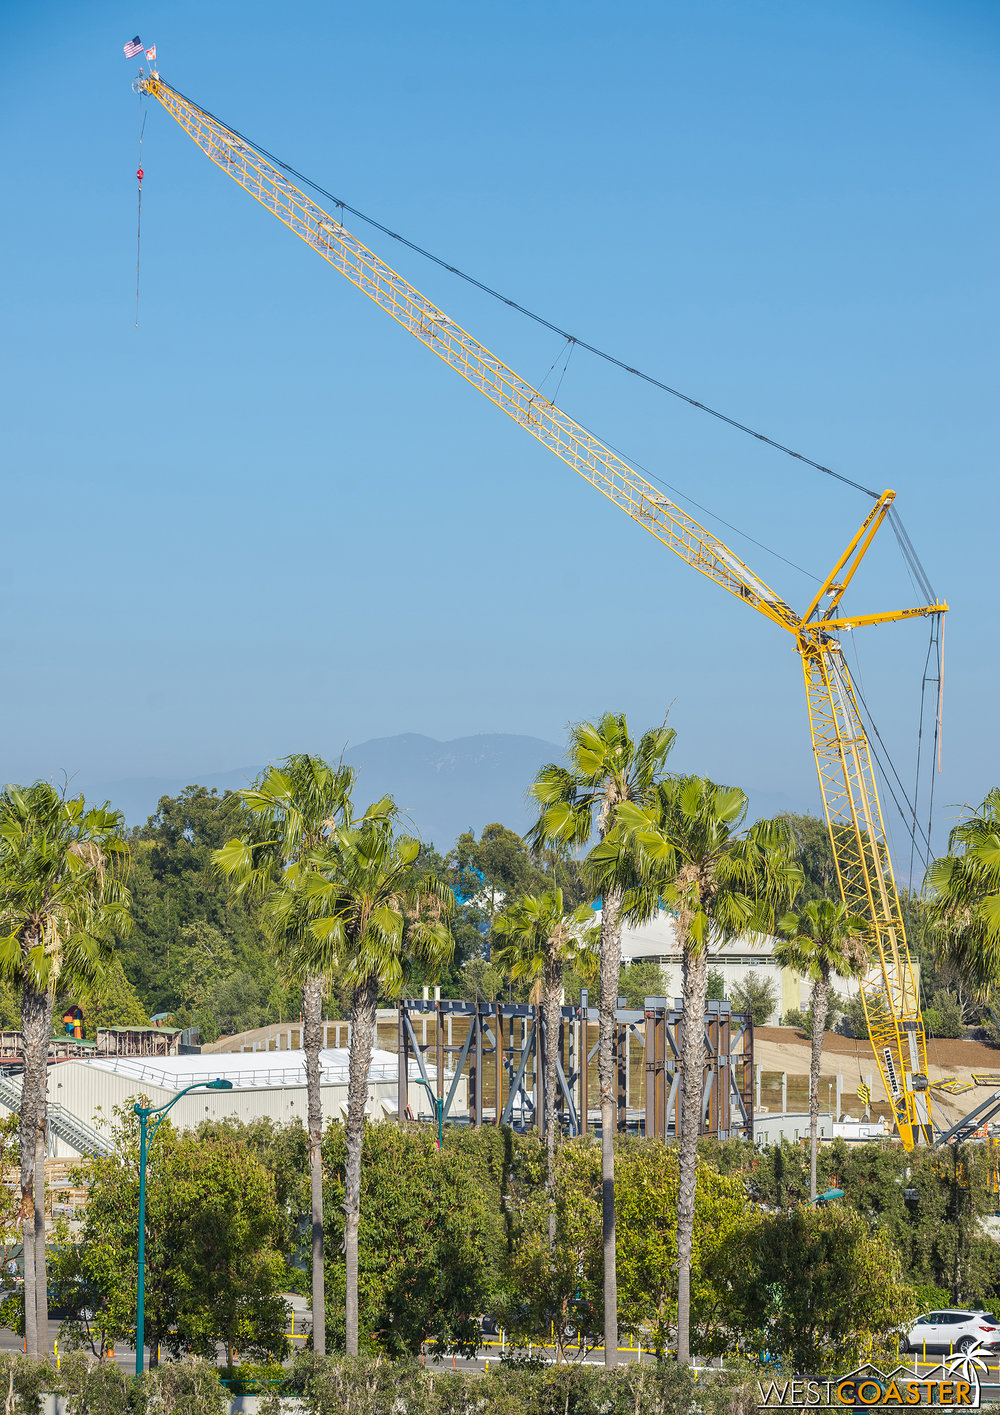 Remember that second crane? Well, that's the big news of the week.